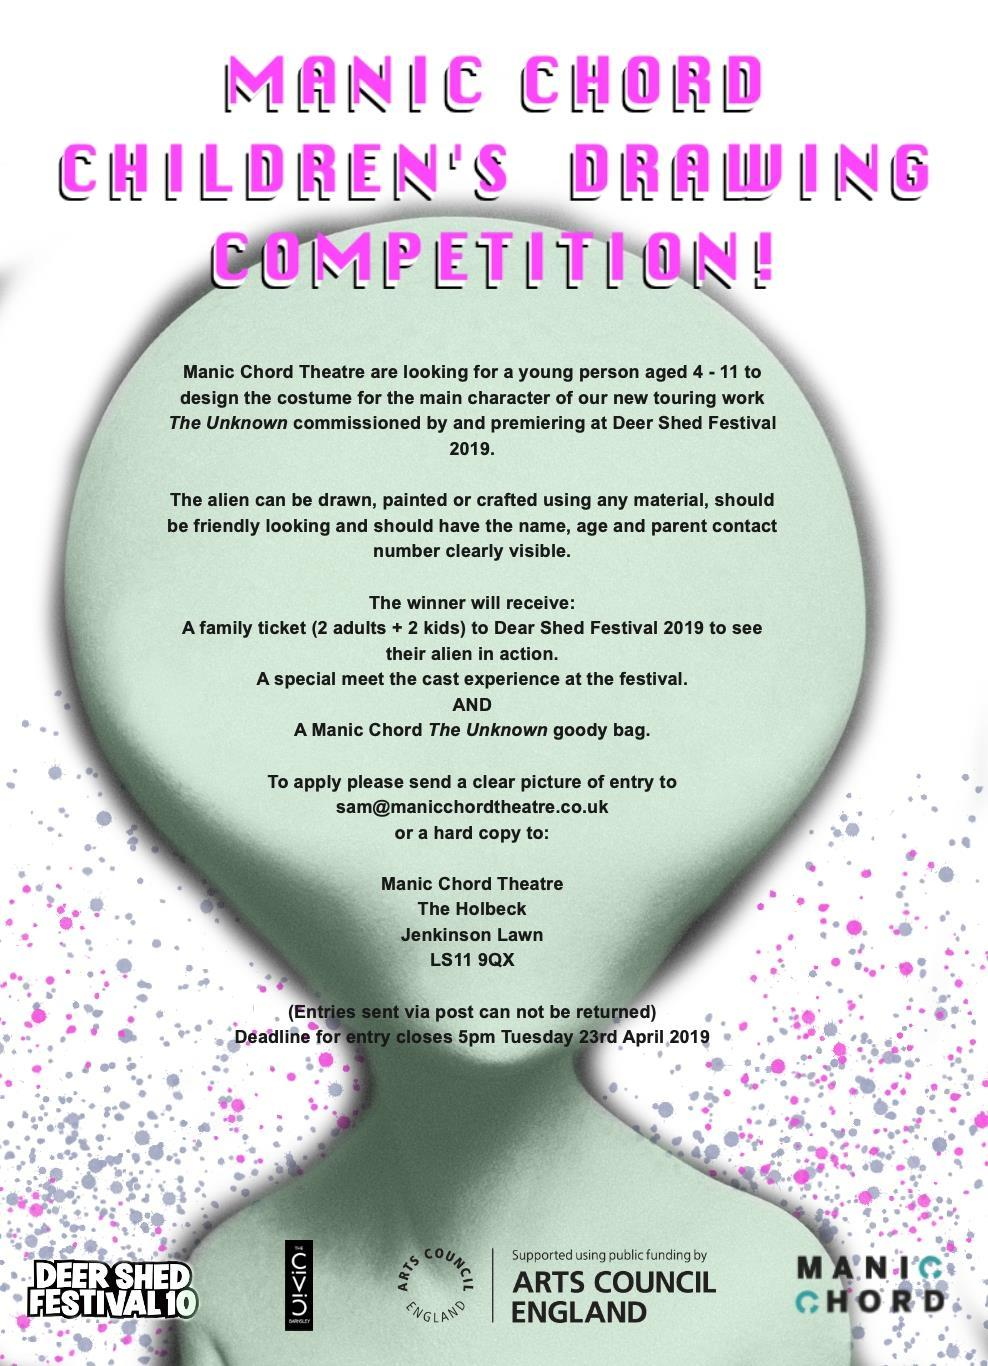 Just 5 days left to enter Manic Chord Theatre's brilliant drawing competition to...